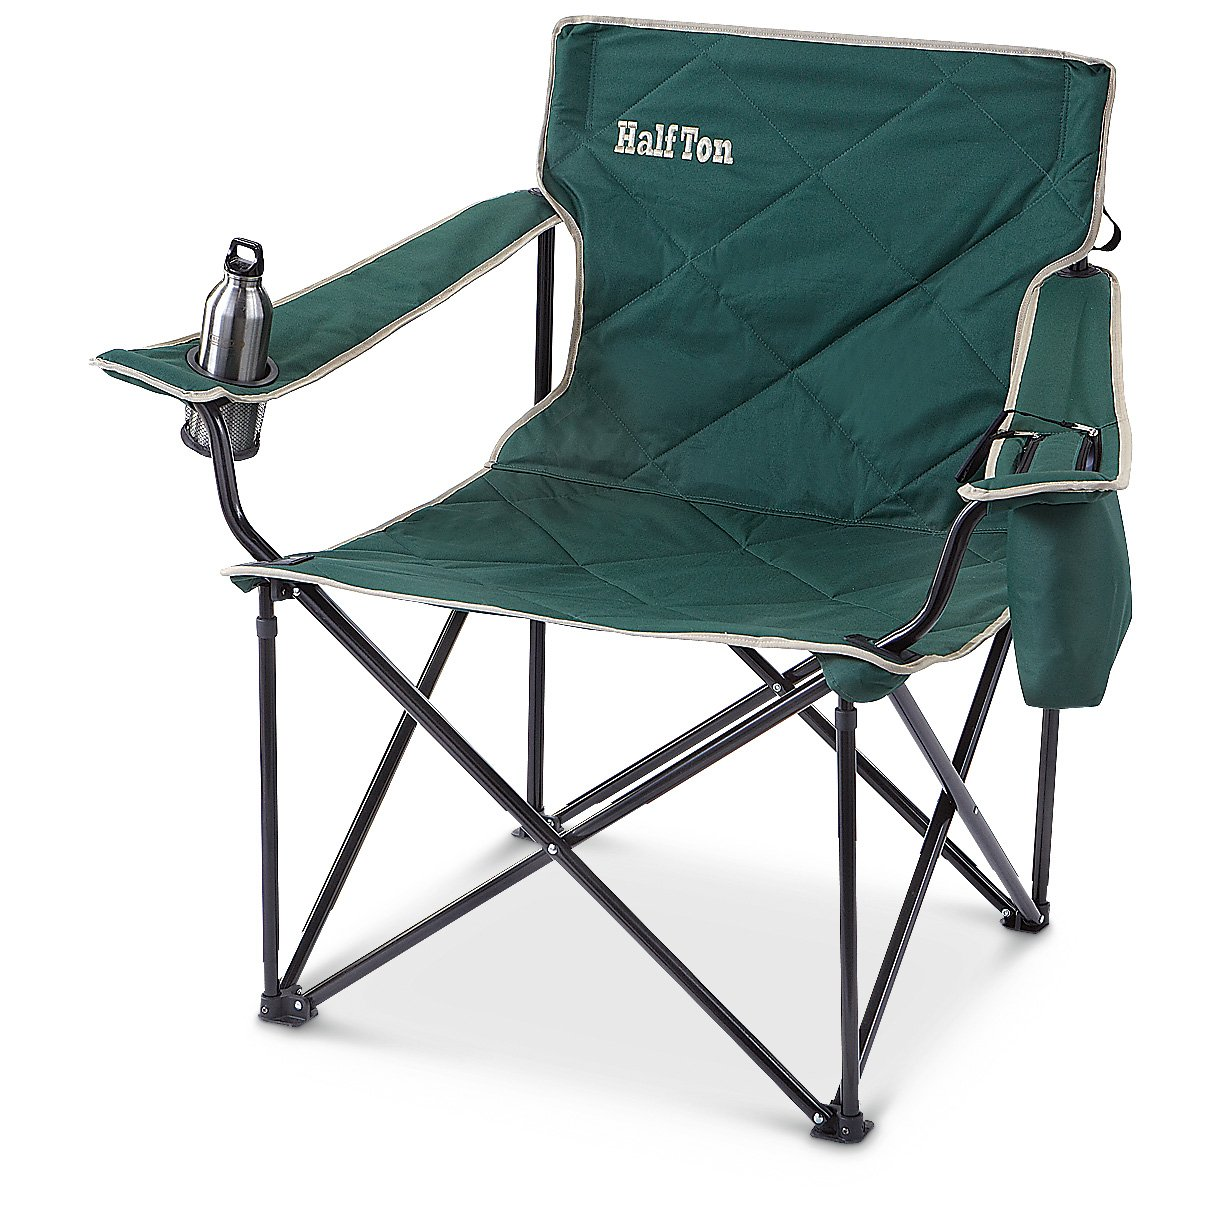 Comfortable camping chairs - Guide Gear 1 2 Ton Folding Camp Chair